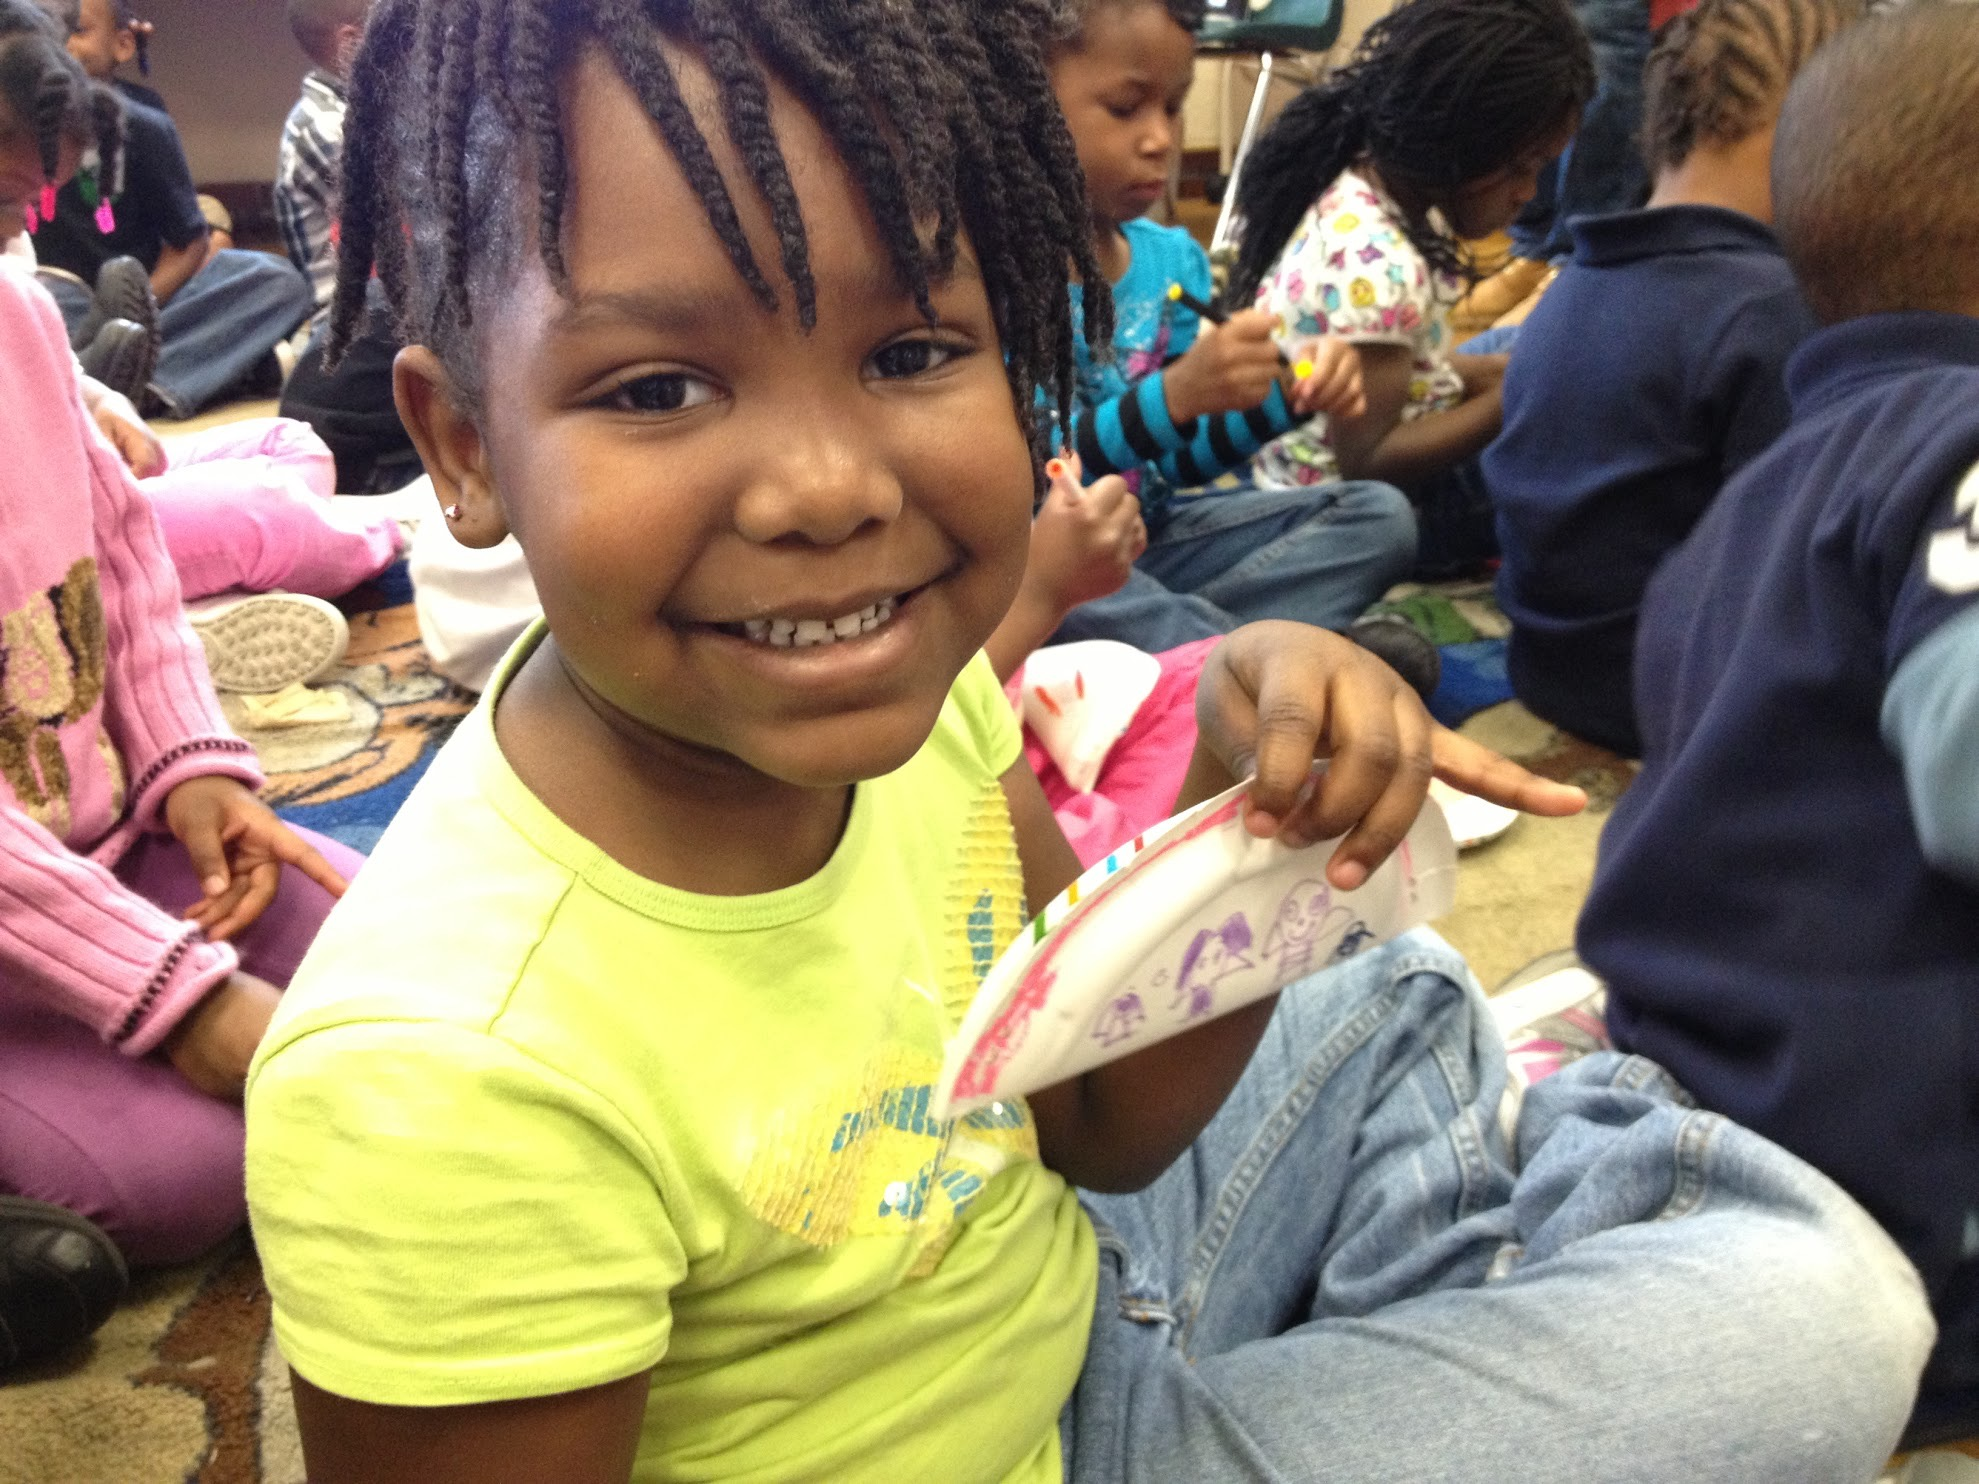 Making paper music shakers with elementary school students to encourage creative reuse of household object.